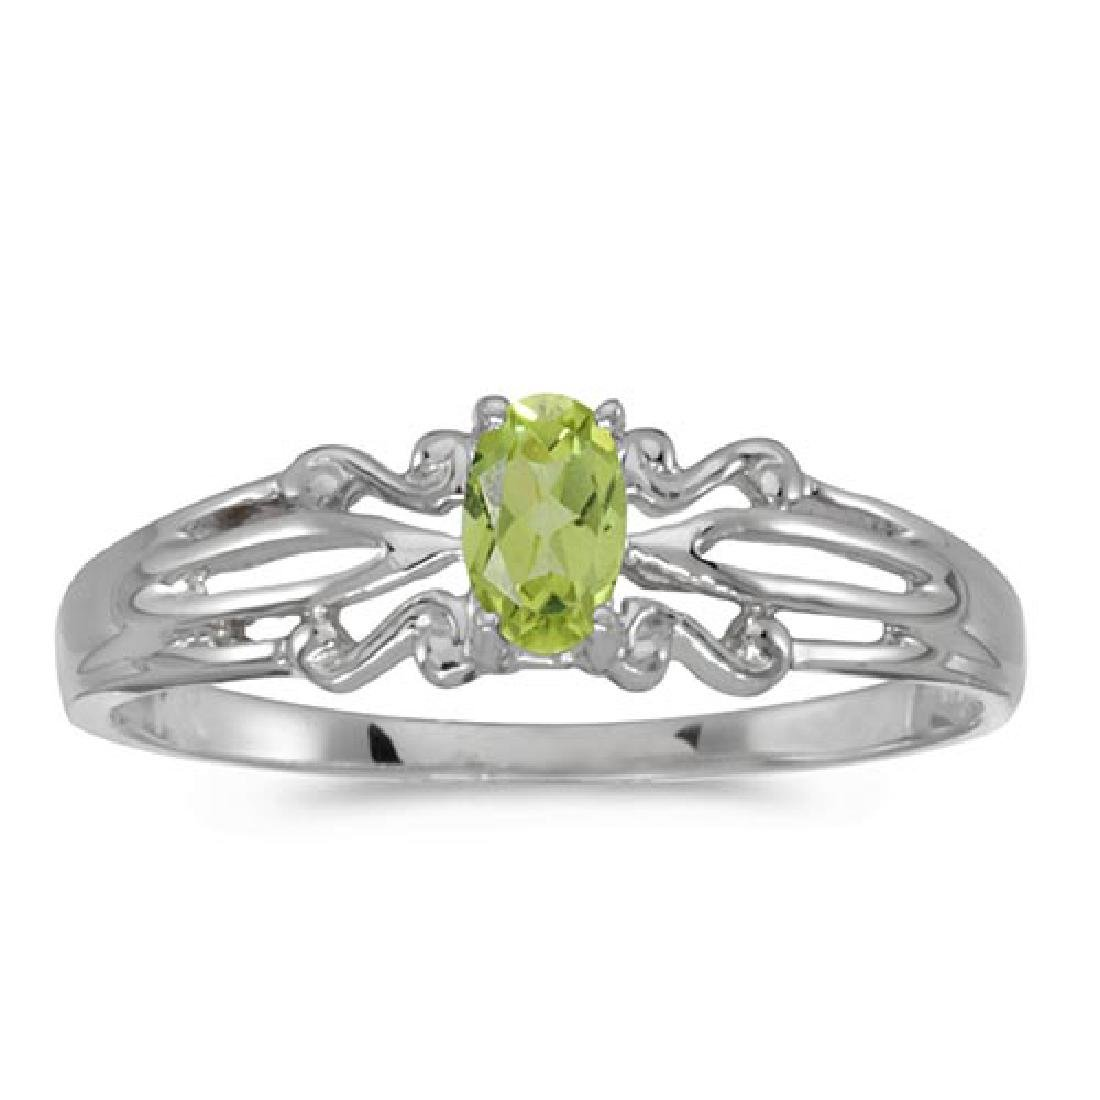 Certified 14k White Gold Oval Peridot Ring